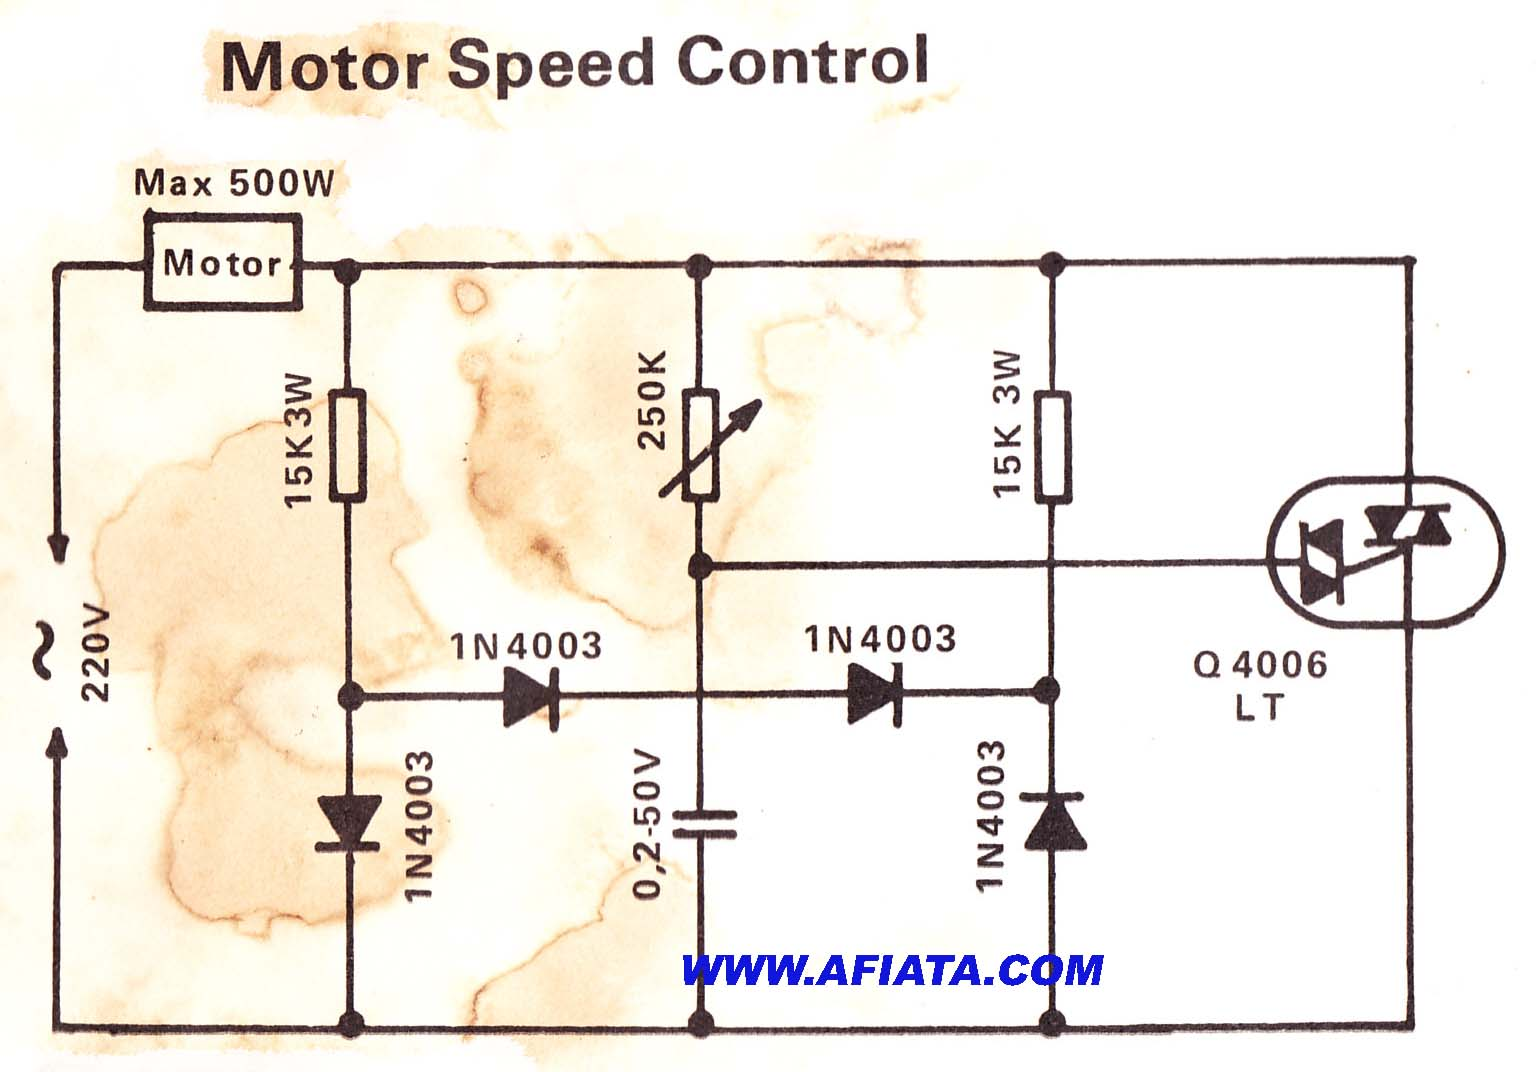 Motor Speed Control Electronic Circuit Diagram And Layout